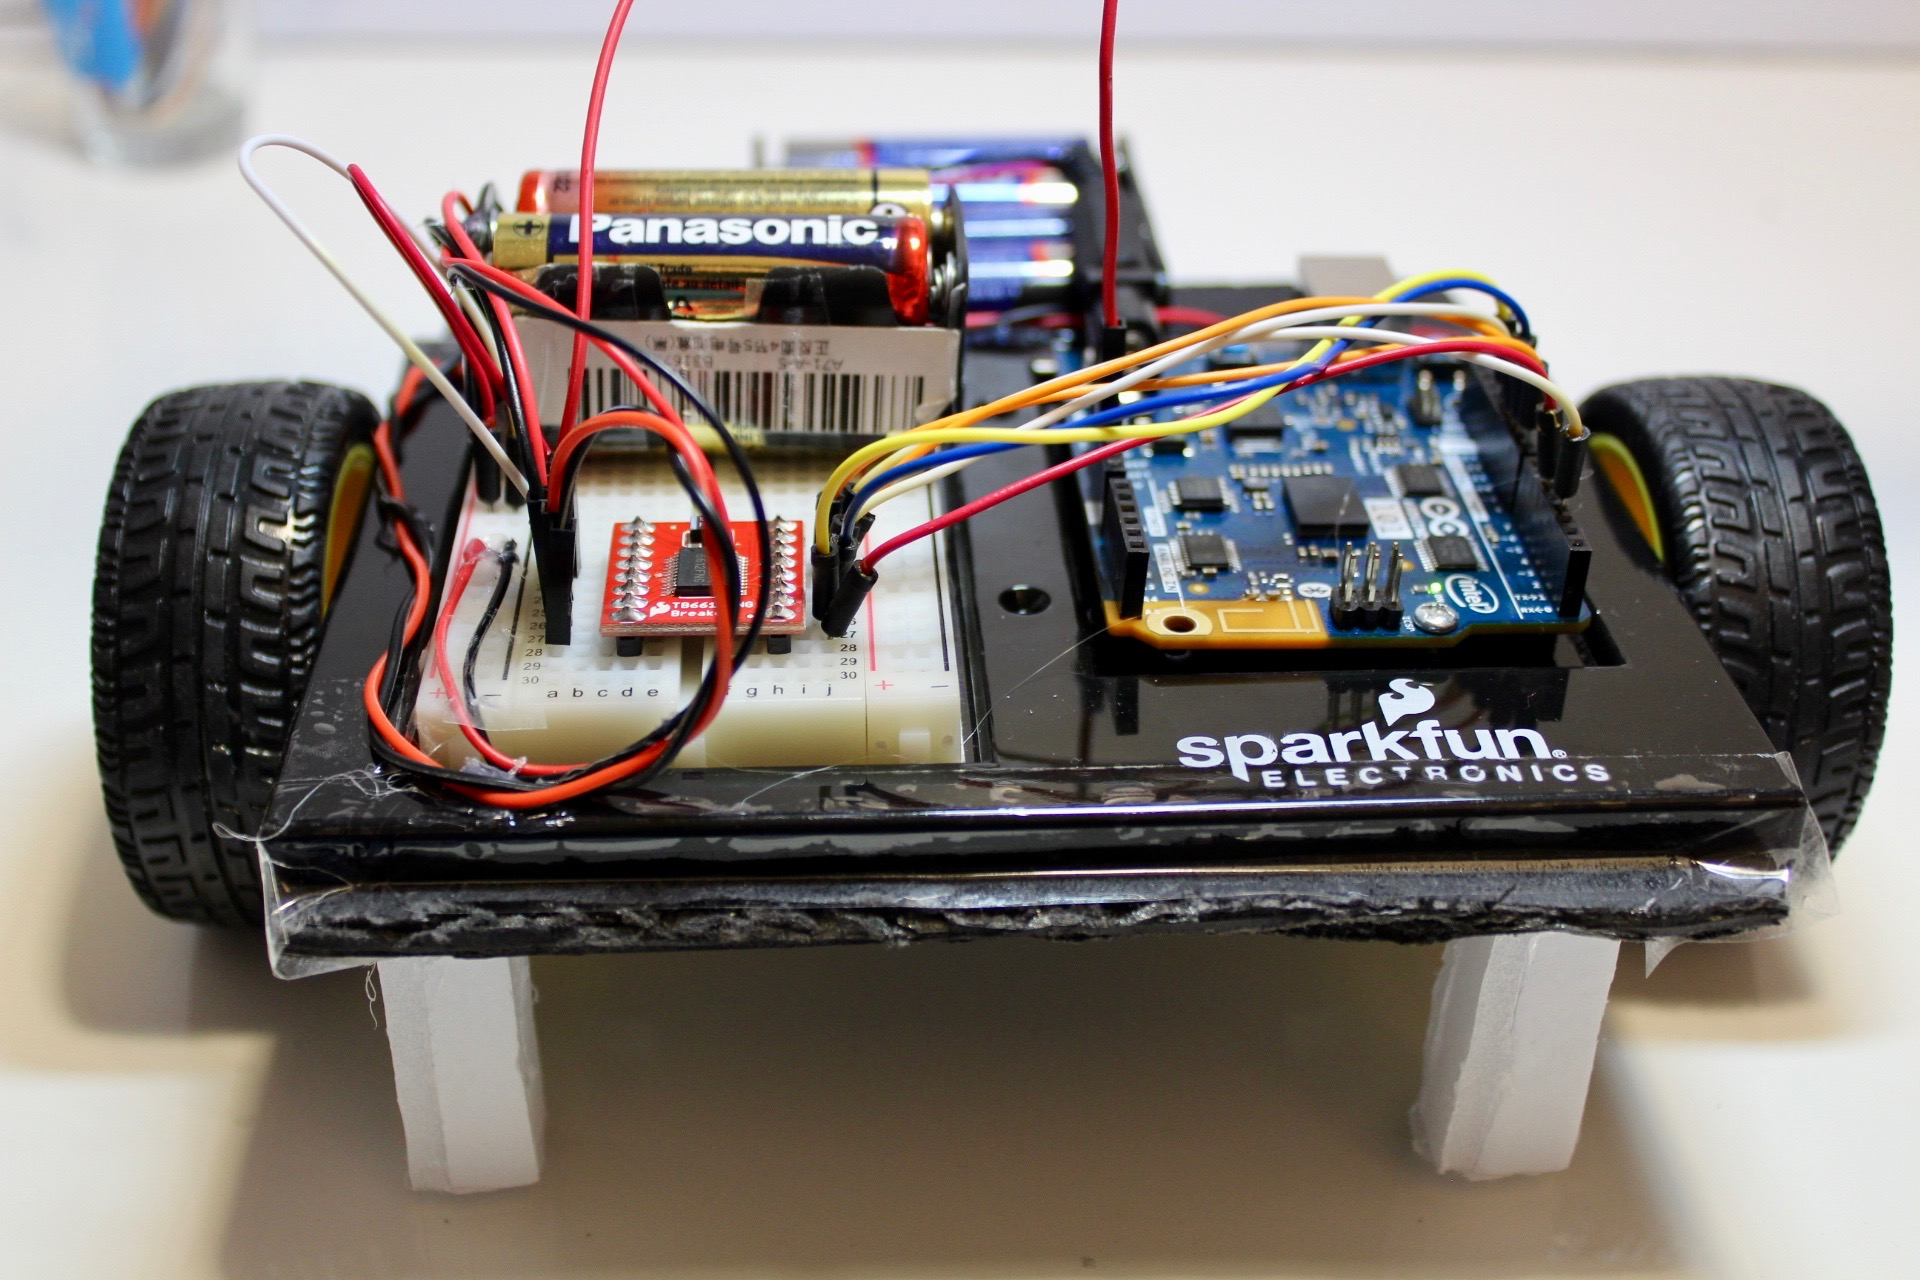 Picture of Sarah the Simplest Arduino Robot